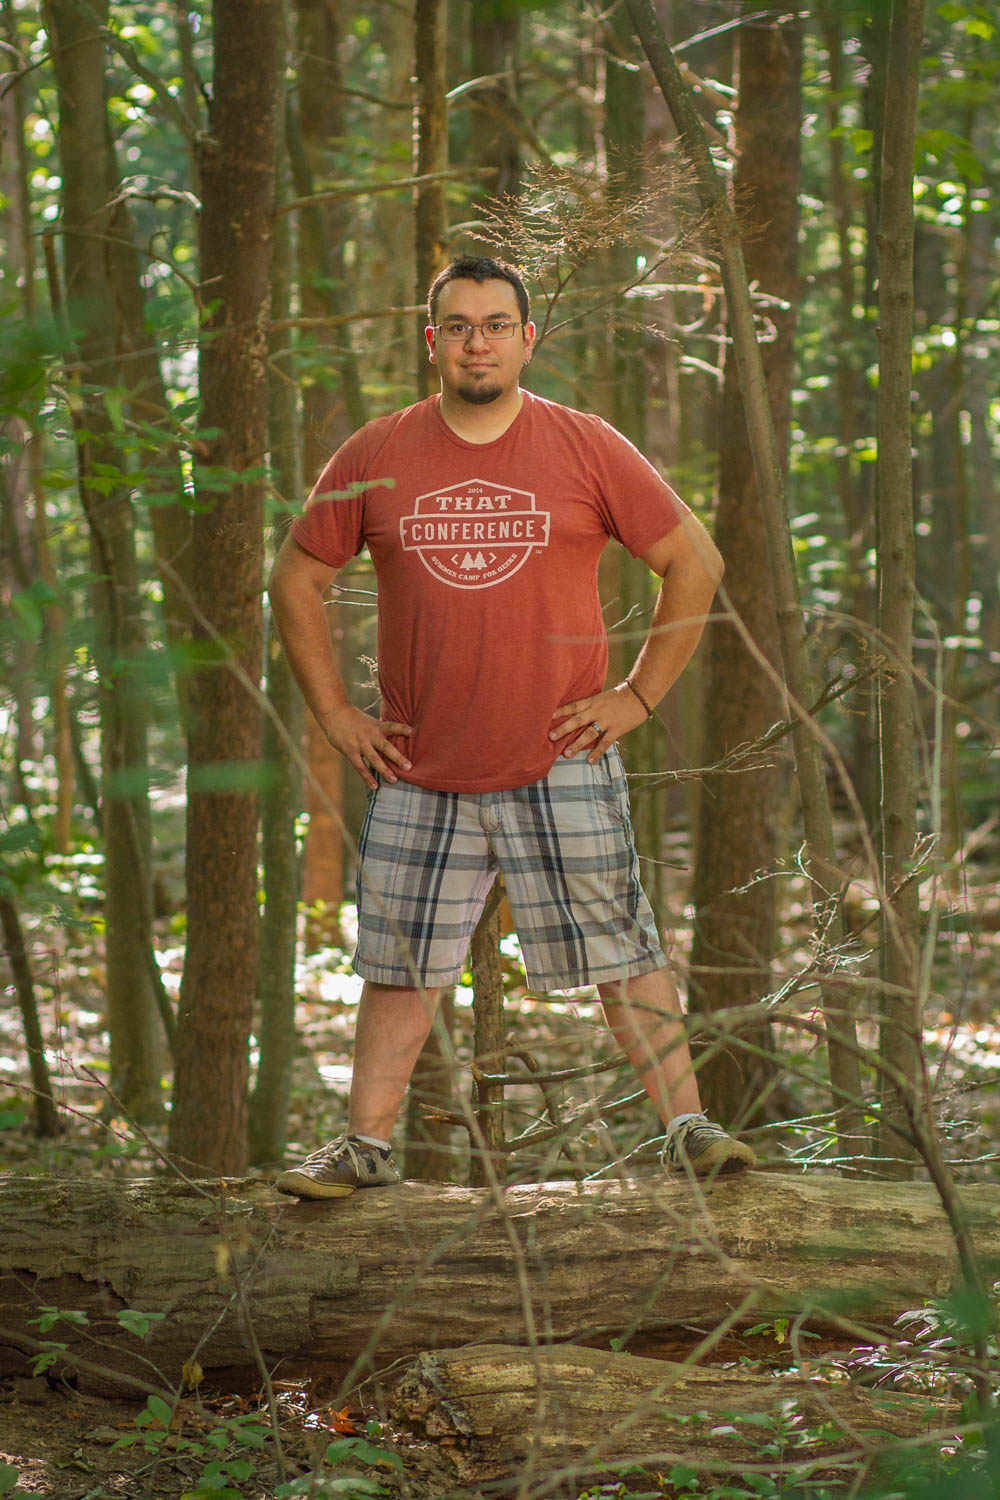 Into the Woods for a Geek's Summer Camp